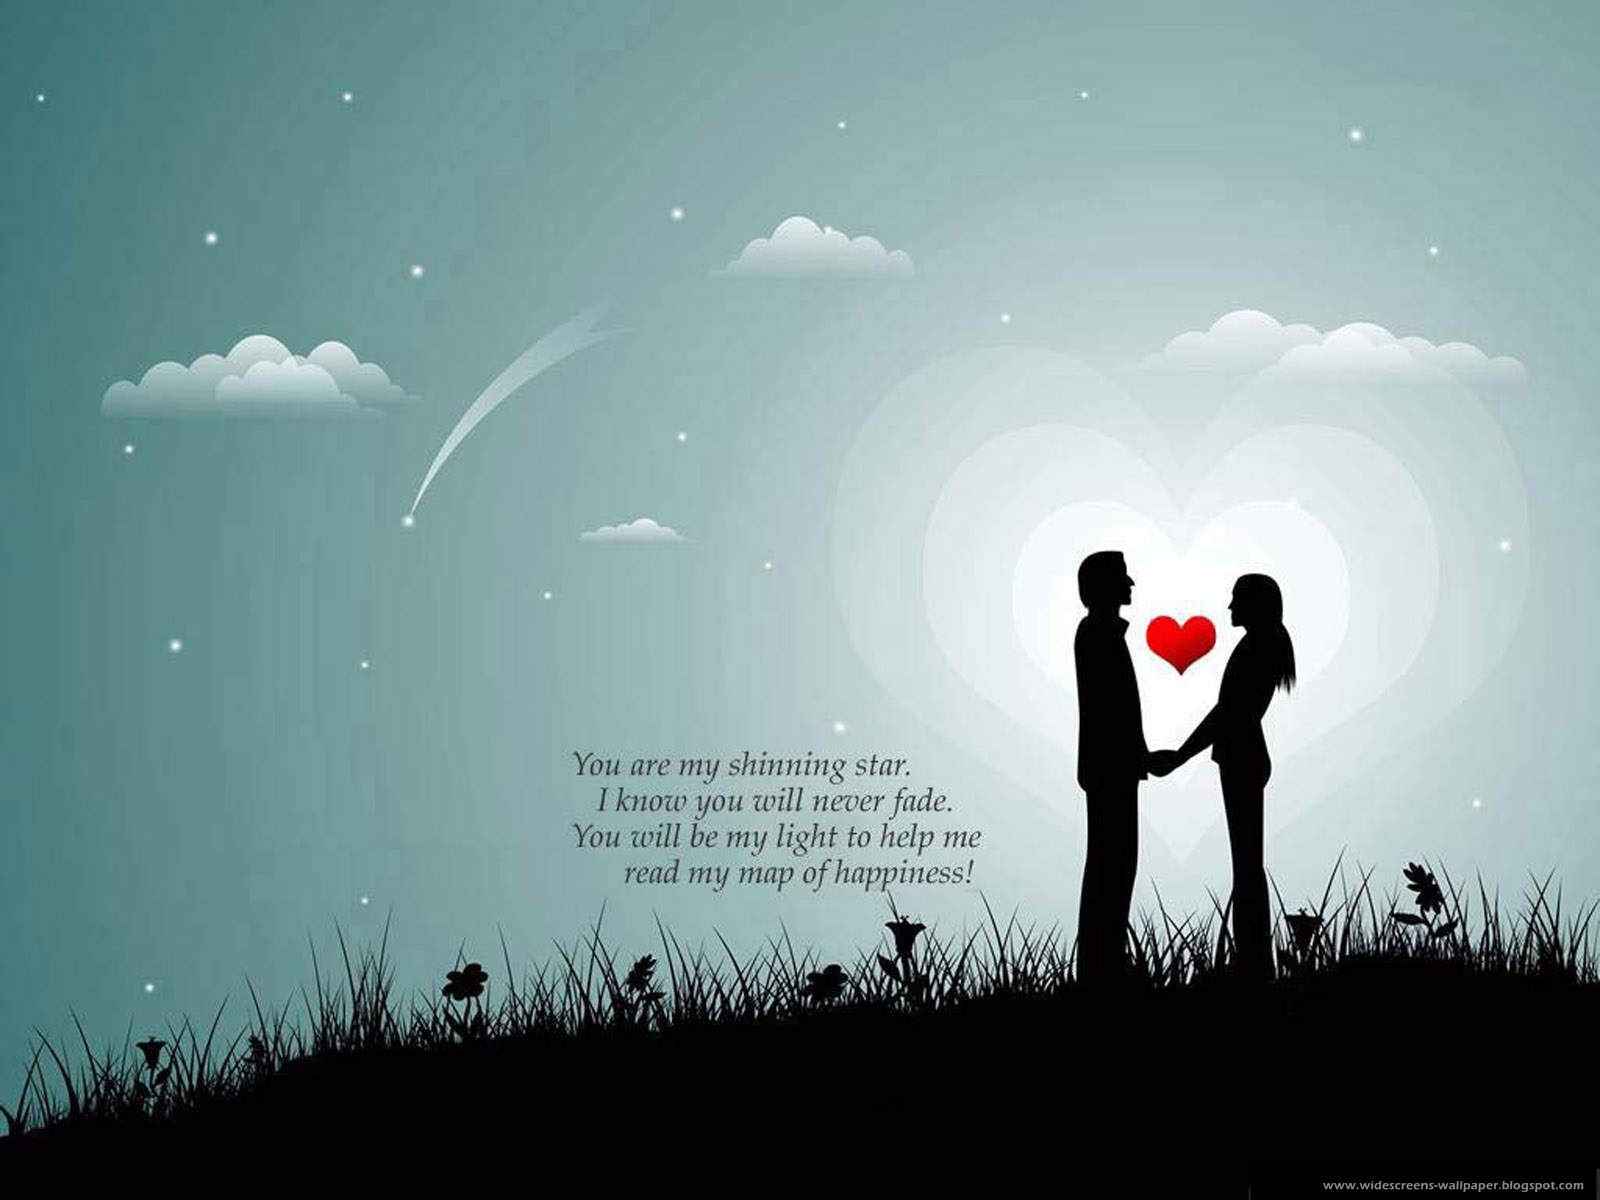 Wallpaper Collection For Your Computer and Mobile Phones: New Romantic Love Words And Quotations ...